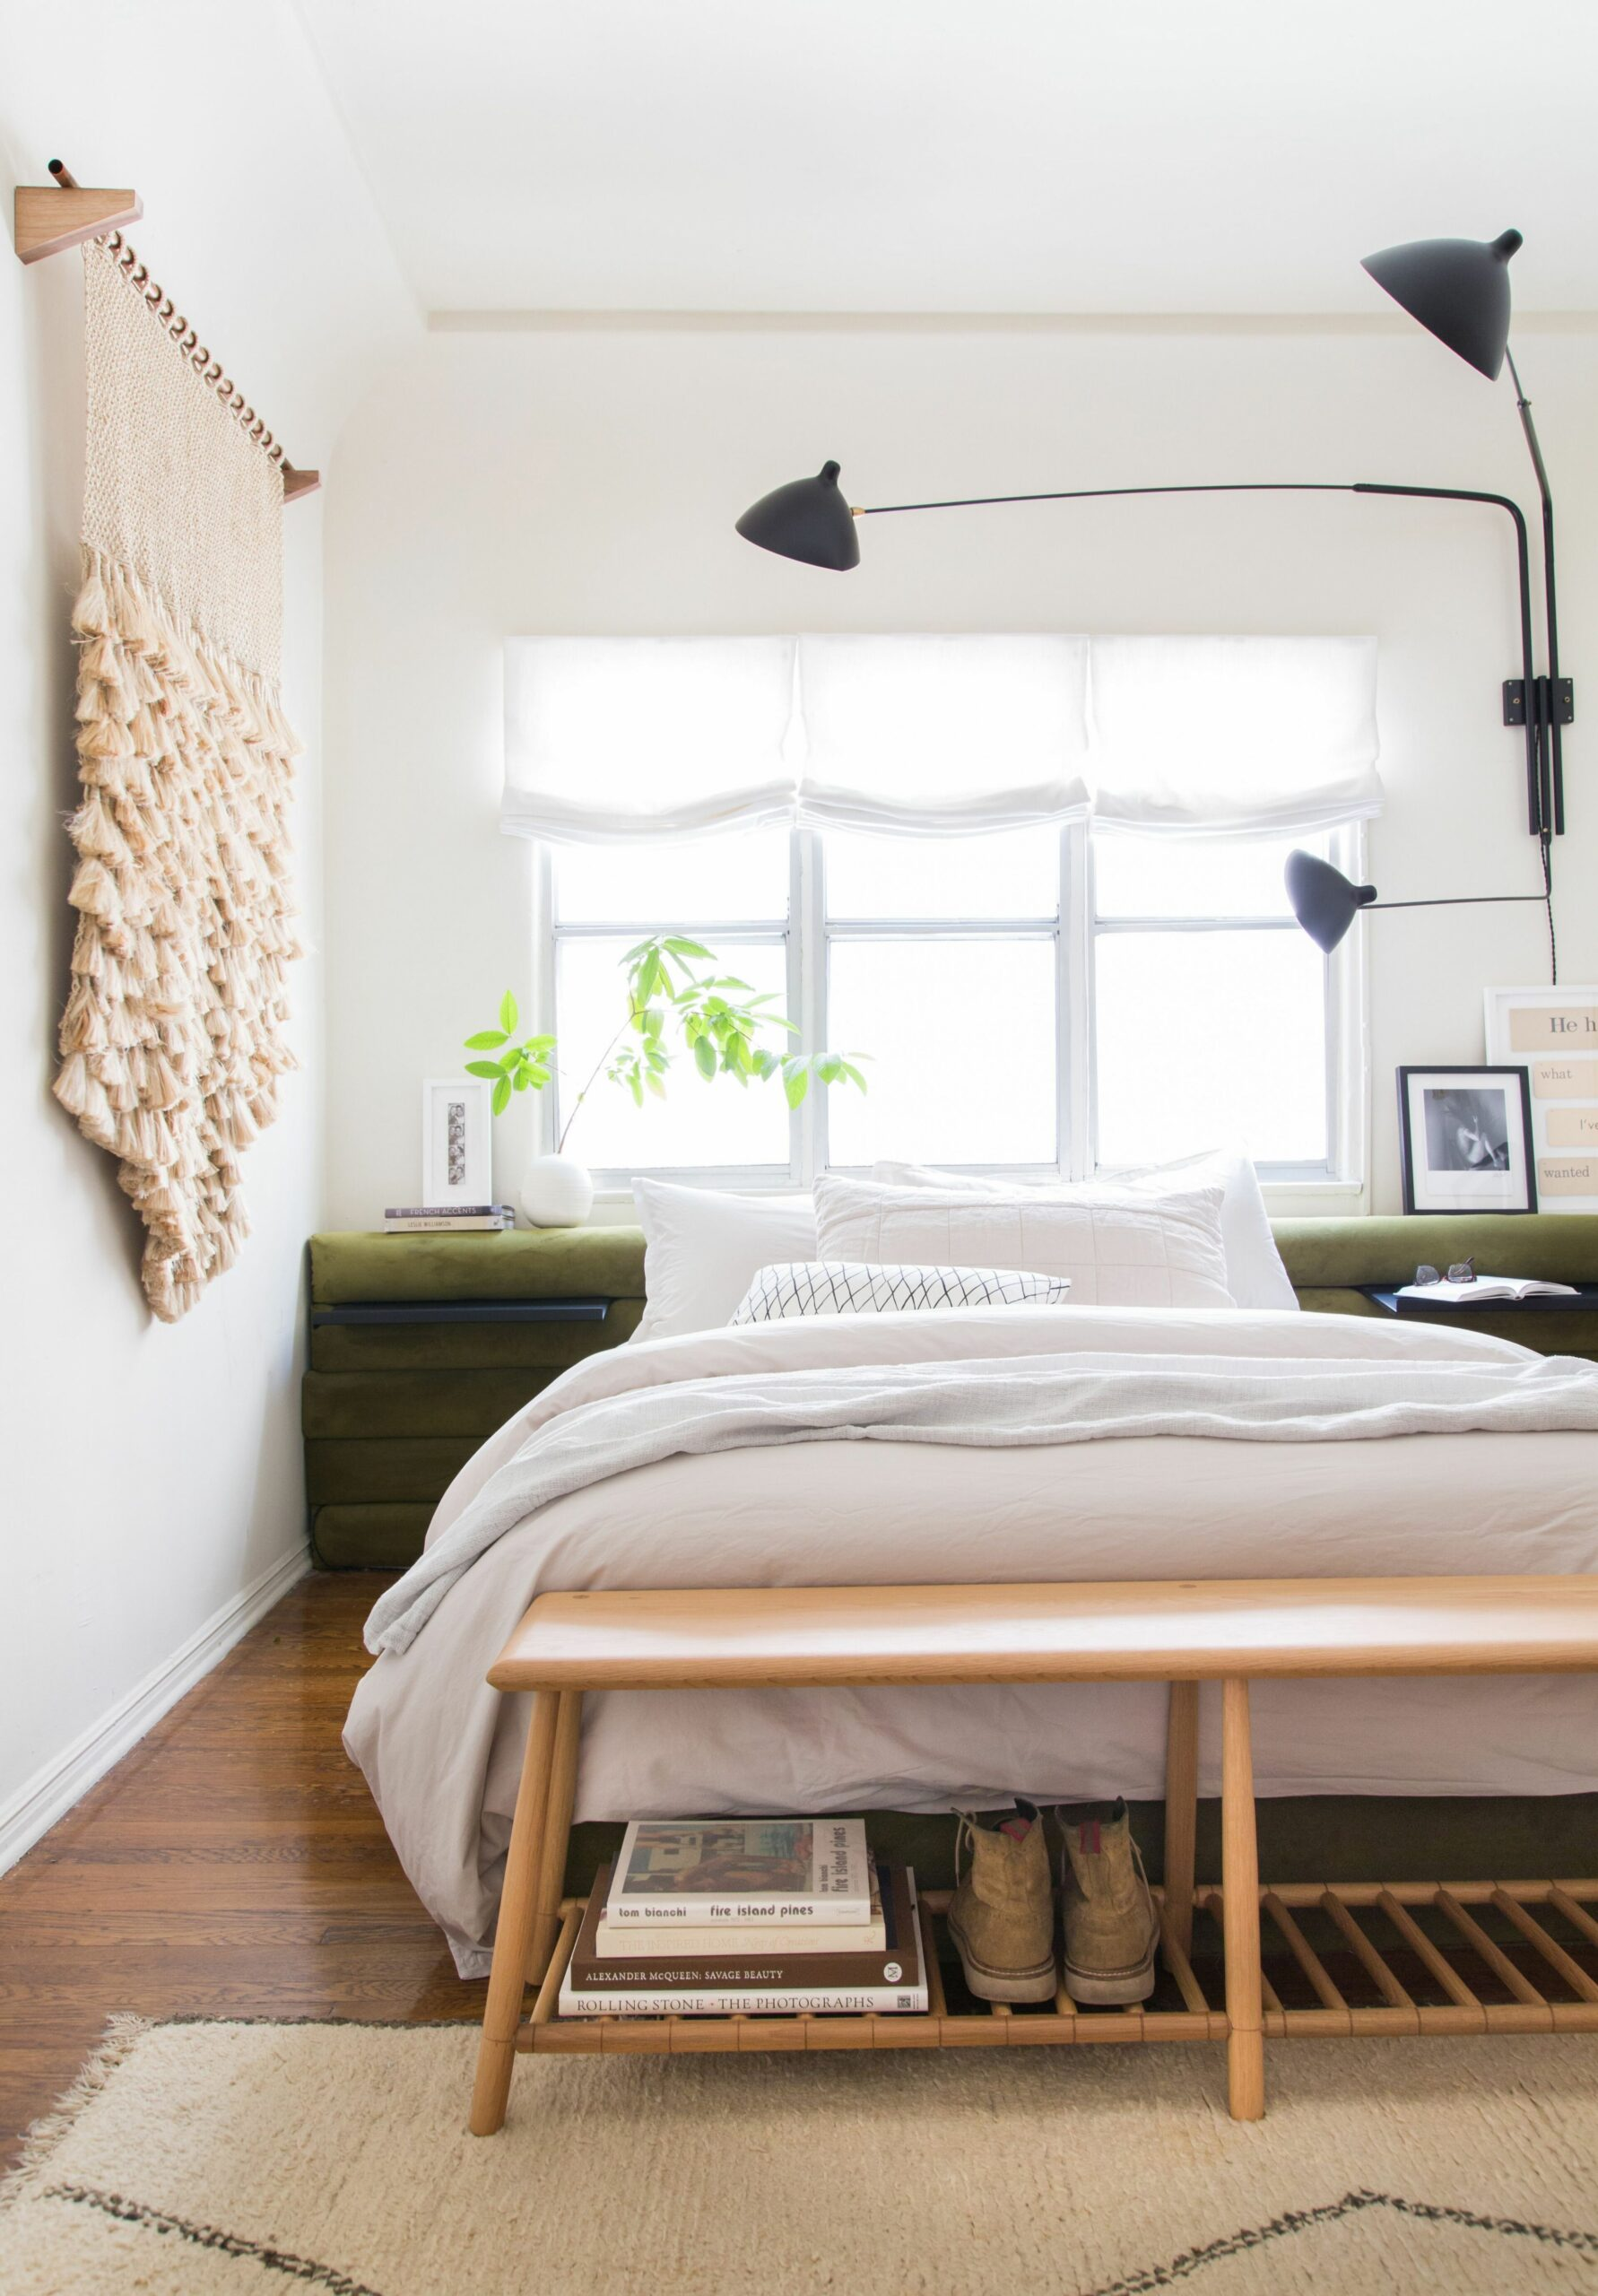 12 Small Space Decorating Ideas – Small House Ideas - bedroom ideas small spaces